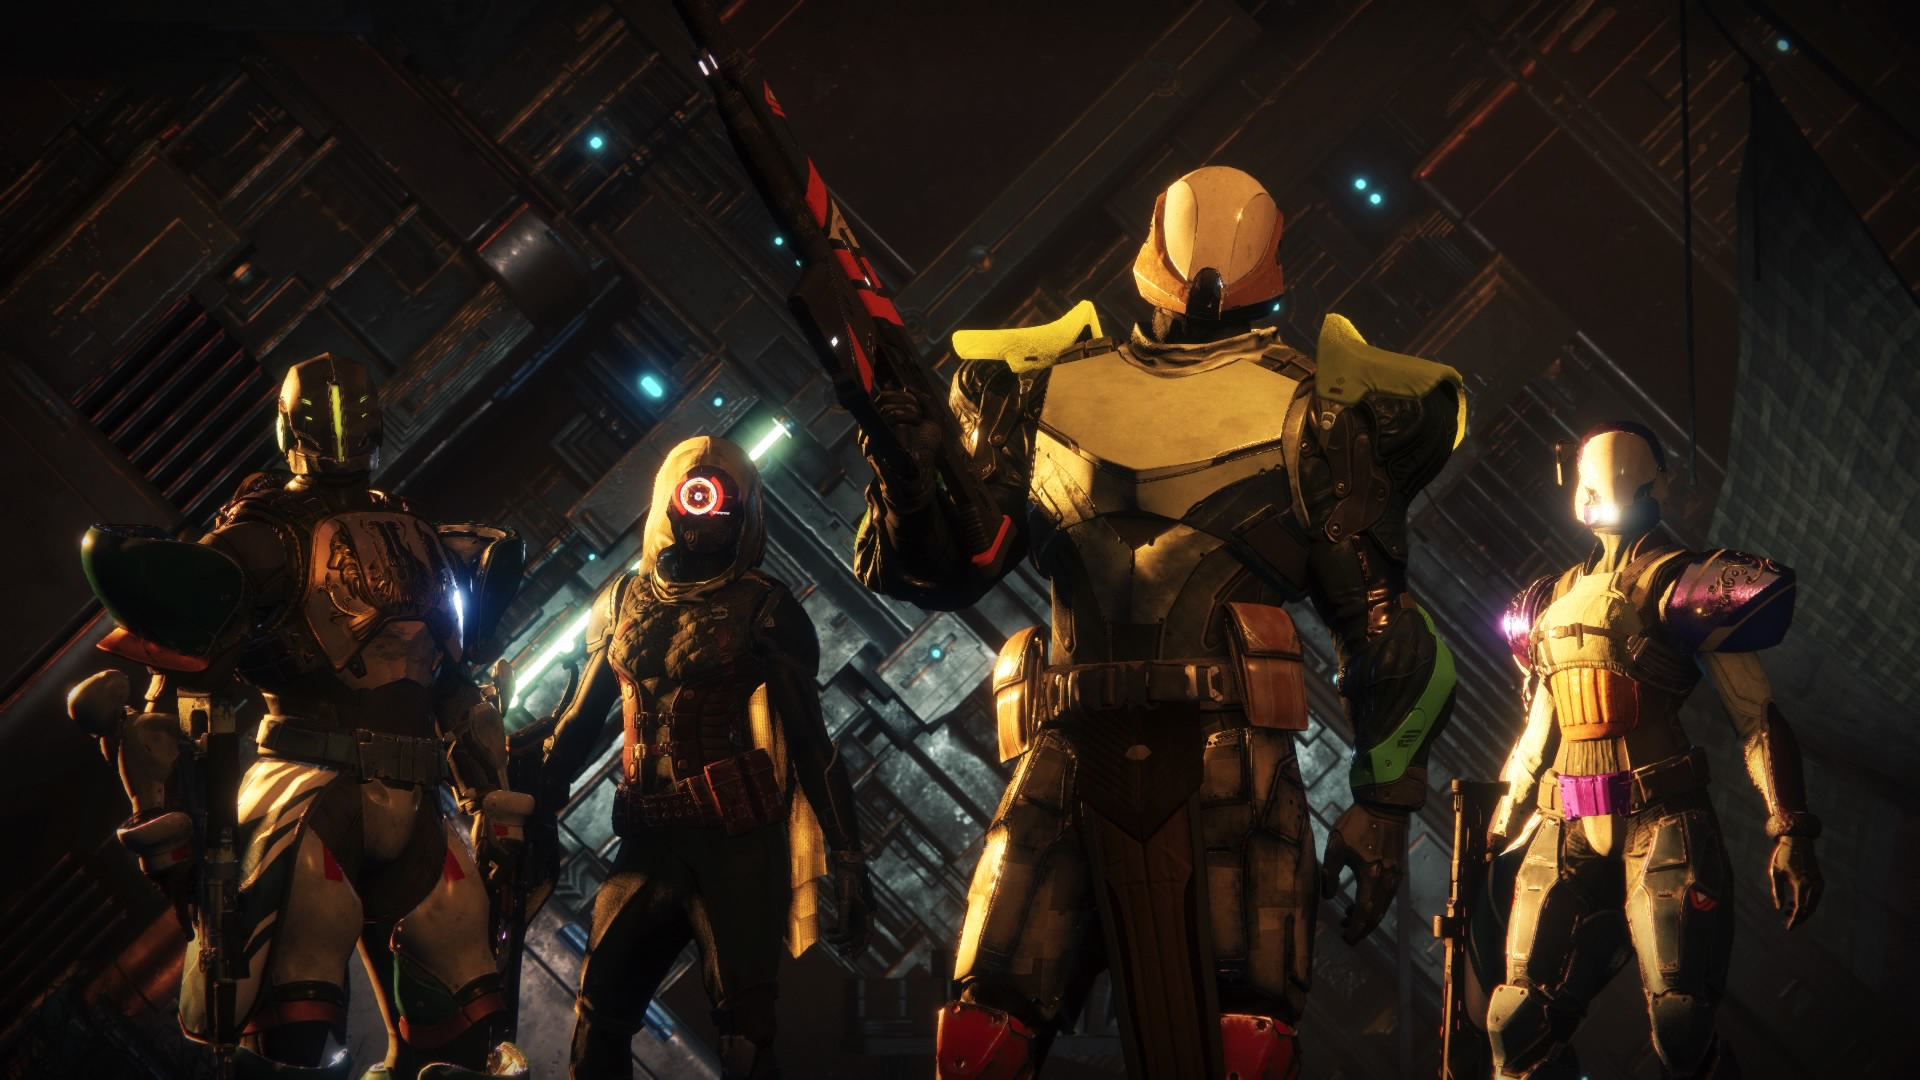 Bungie nerfing Destiny 2's popular reload perks, adding new ones next season